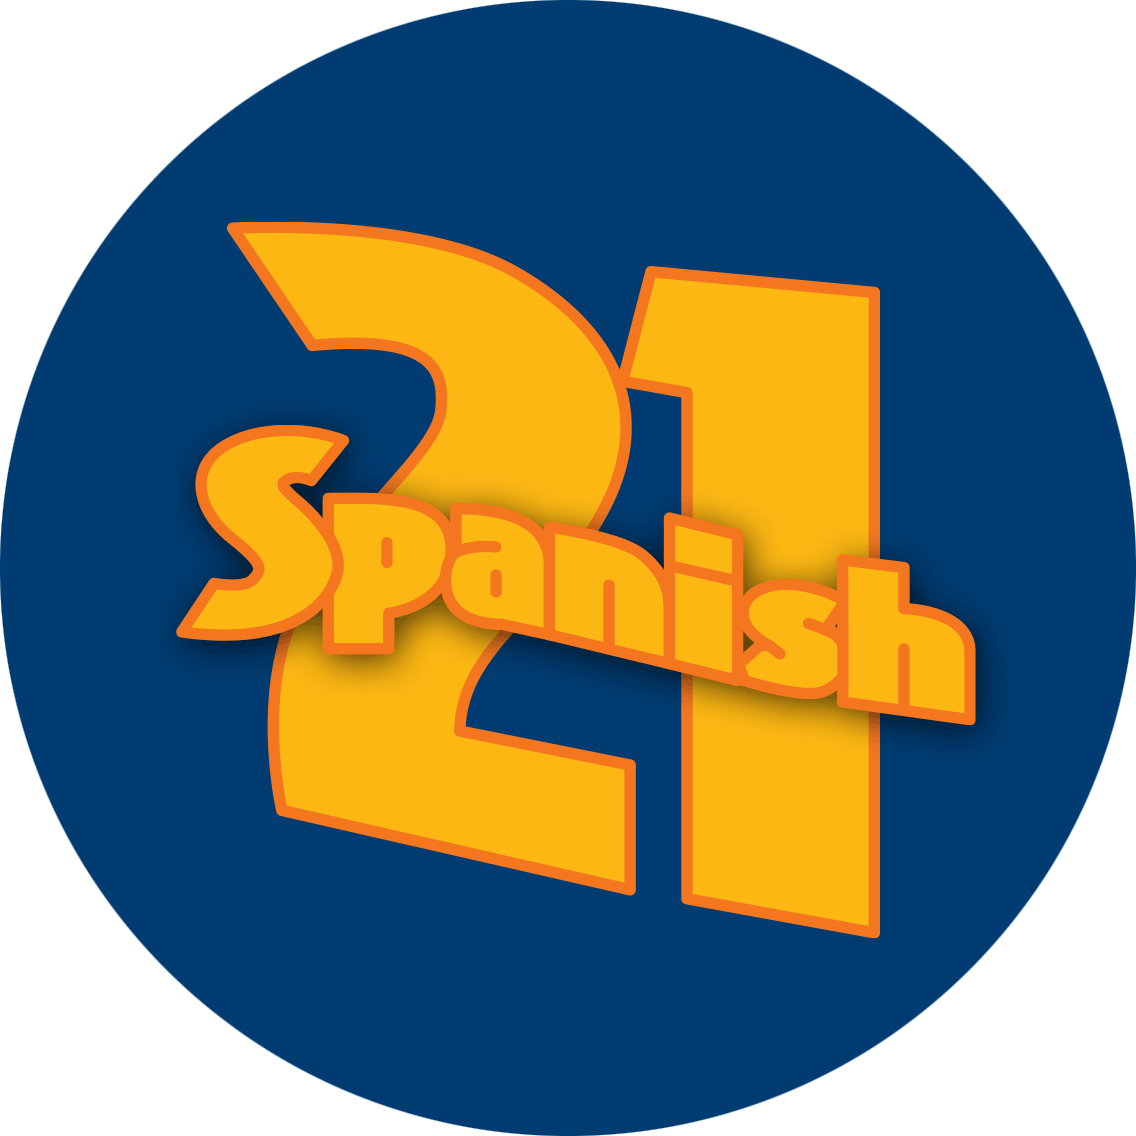 Spanish written across 21.